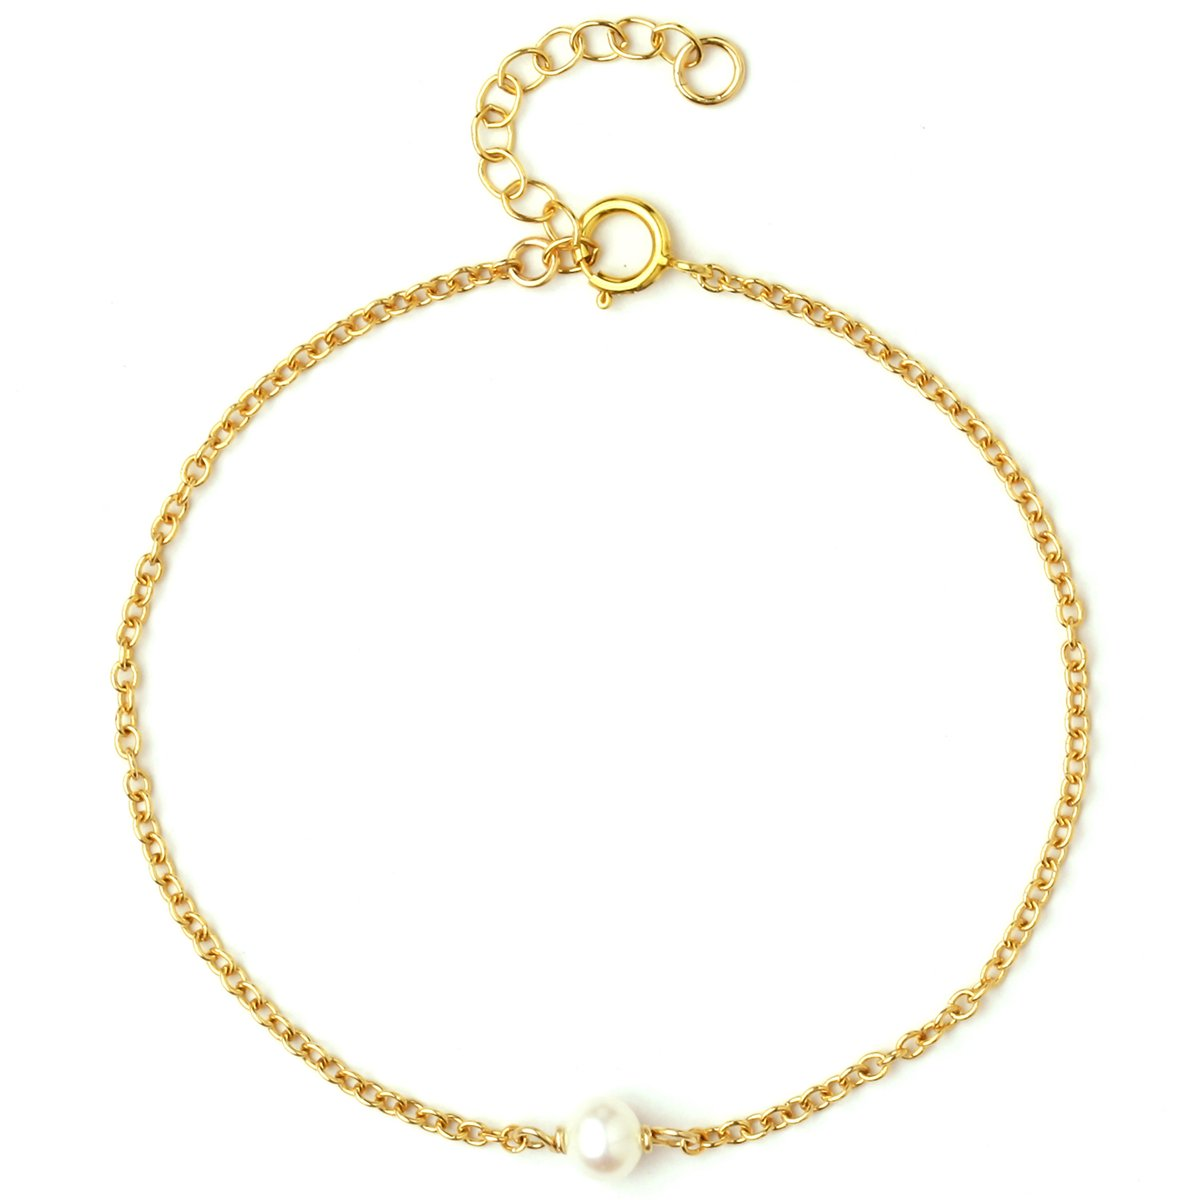 Dainty Bracelet For Women Girls, 14K Gold Filled Super Fine Chain, Simulated Freshwater Pearls, AAA CZ, Layering Essentials, Adjustable, Gifts for Her, Made in USA, 6.5''+1'' (Tiny Single Pearl)